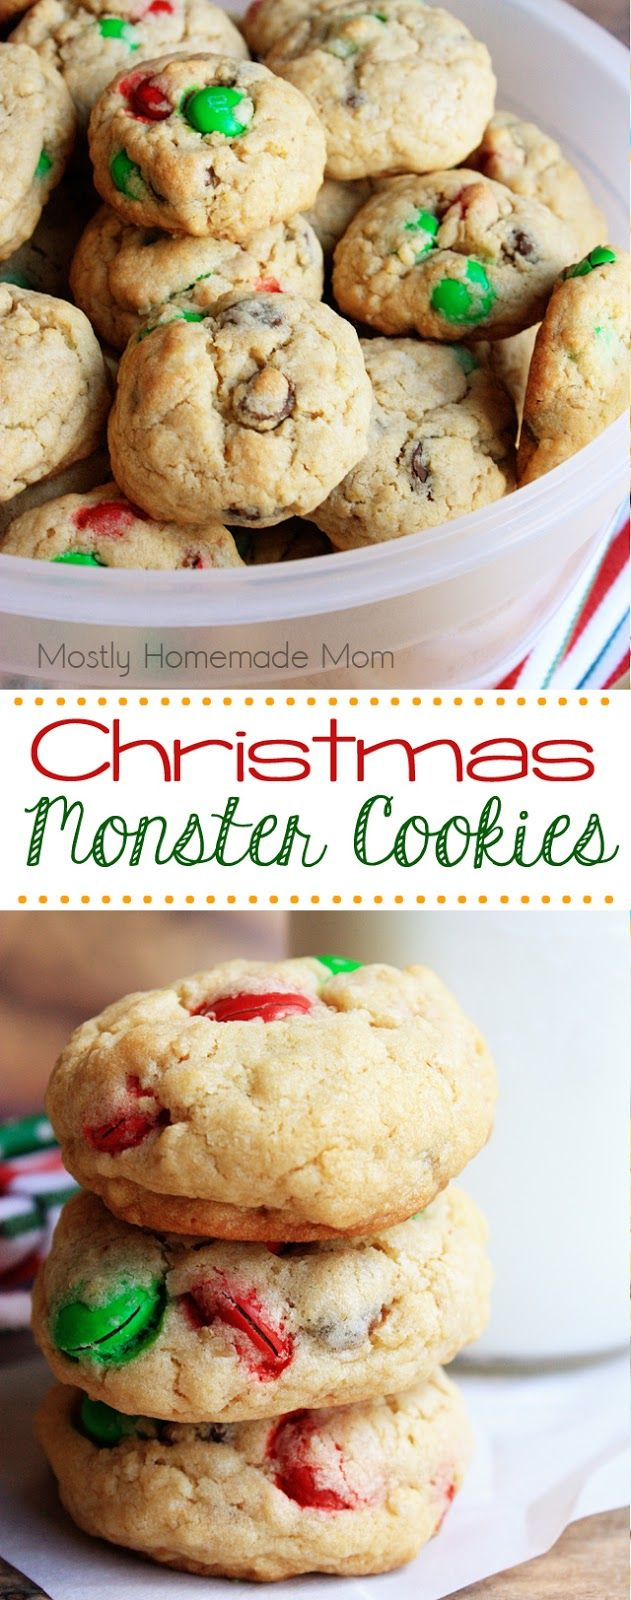 Christmas Monster Cookies - uses peanut butter cookie mix, sugar cookie mix, oats, and festive M&M's for a one-bowl batch of cookies baked up in no time!